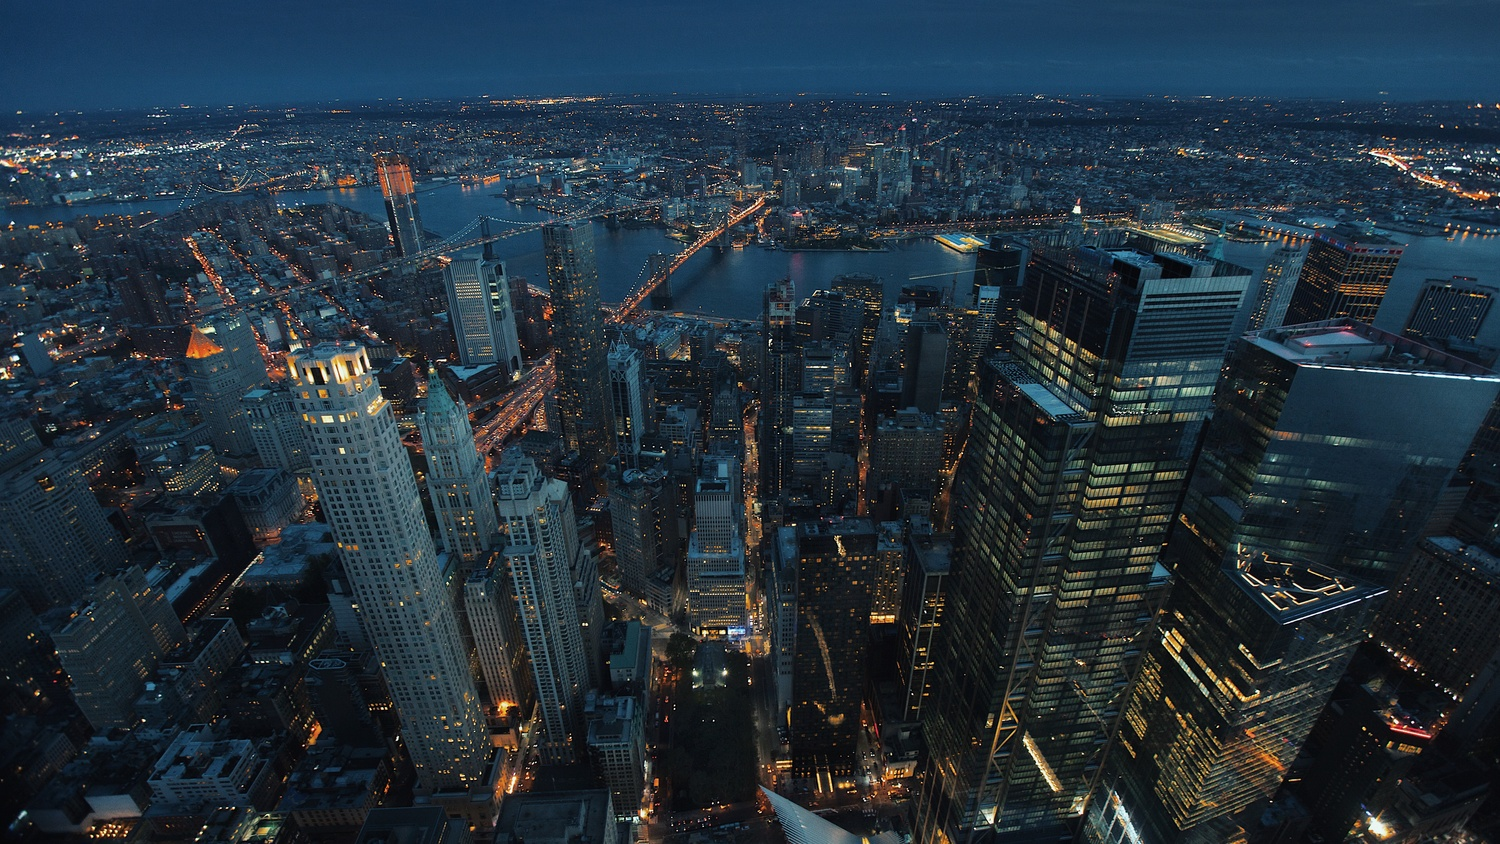 New York City from above at night by Kendall Rittenour